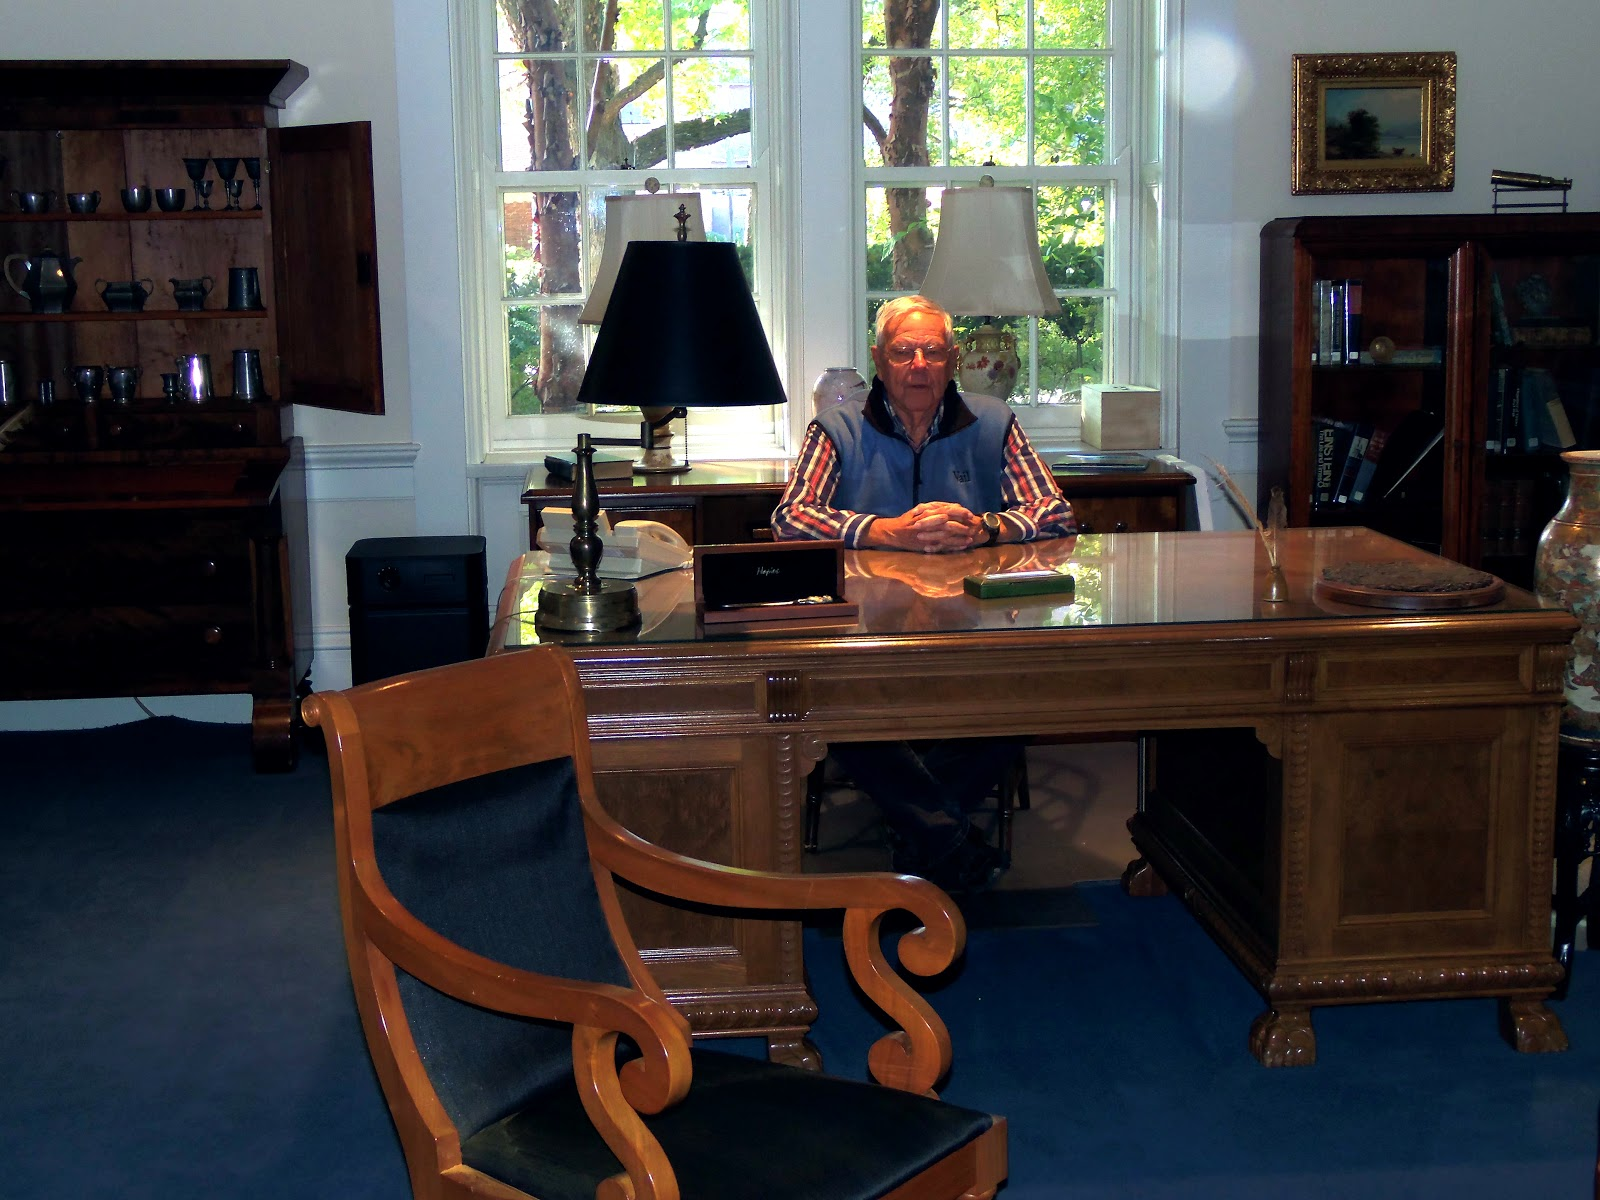 Phil Always Thought He Belonged At The Governors Desk